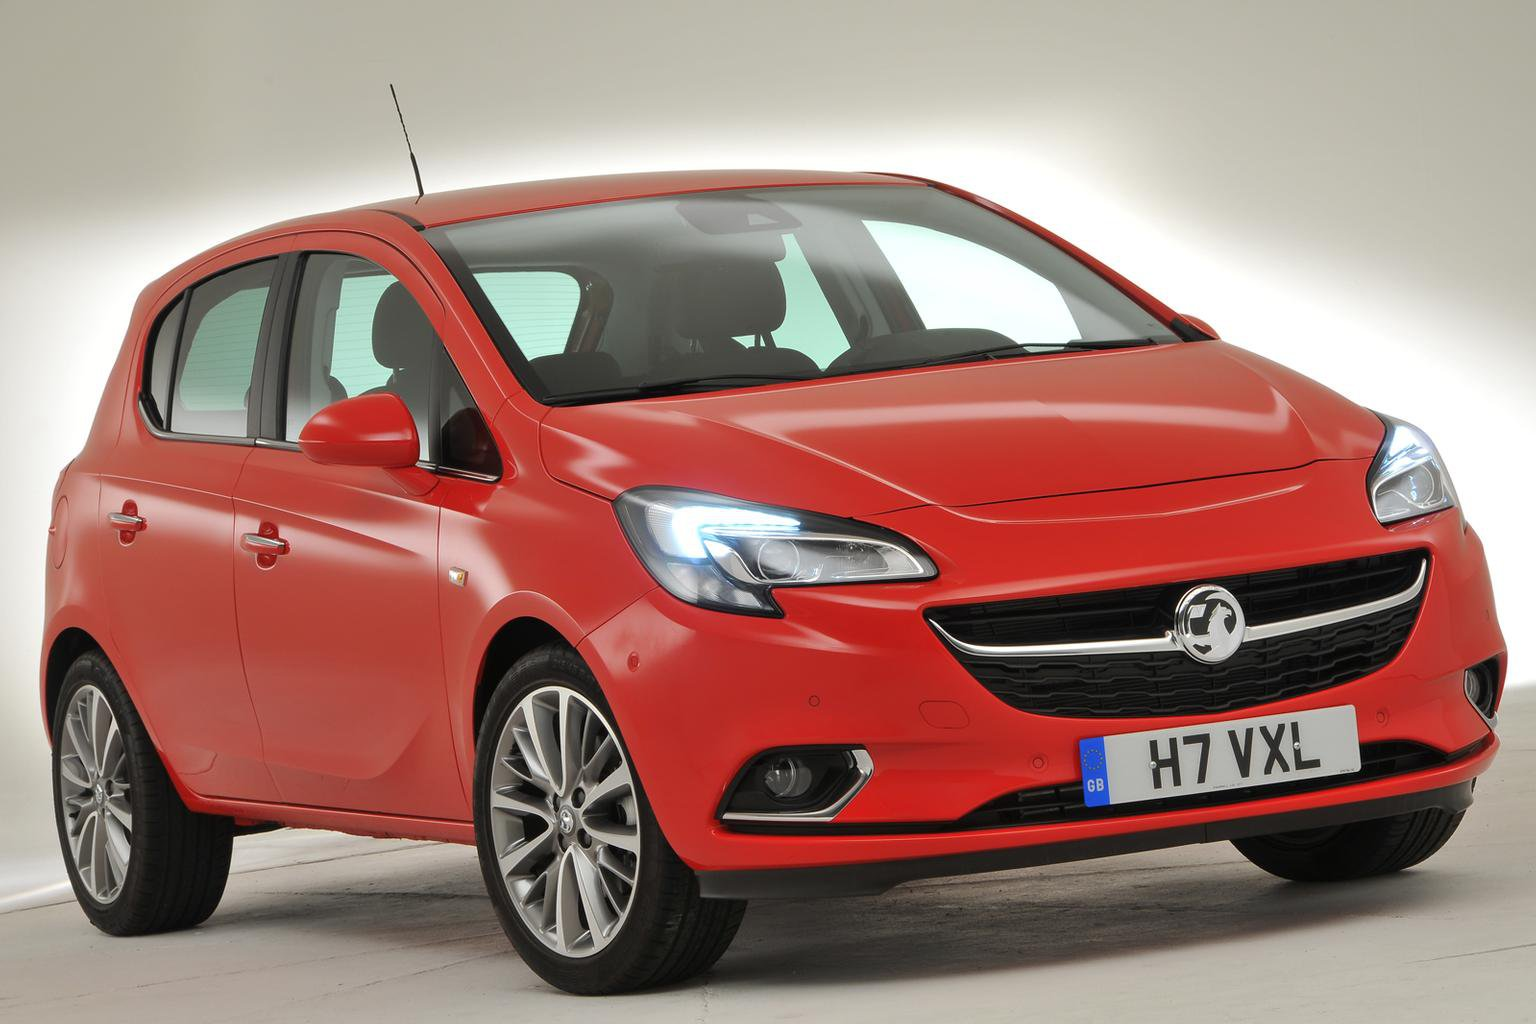 2015 Vauxhall Corsa - the news so far